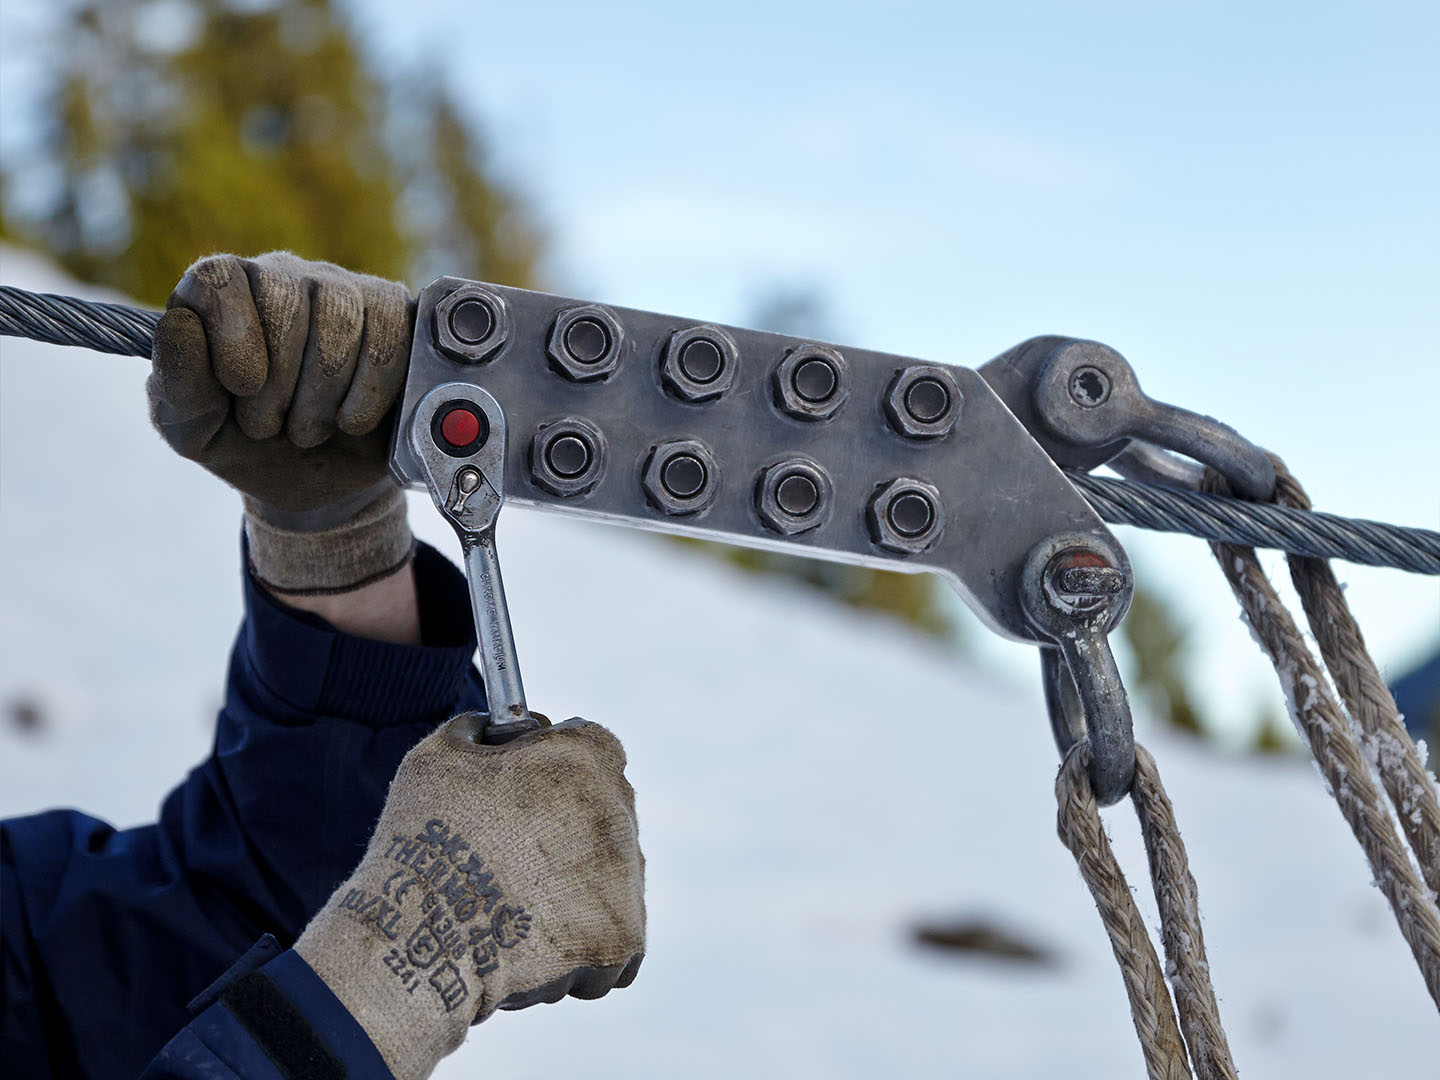 Two hands in gloves of a worker on a snowy mountain adjusting a cable clamp